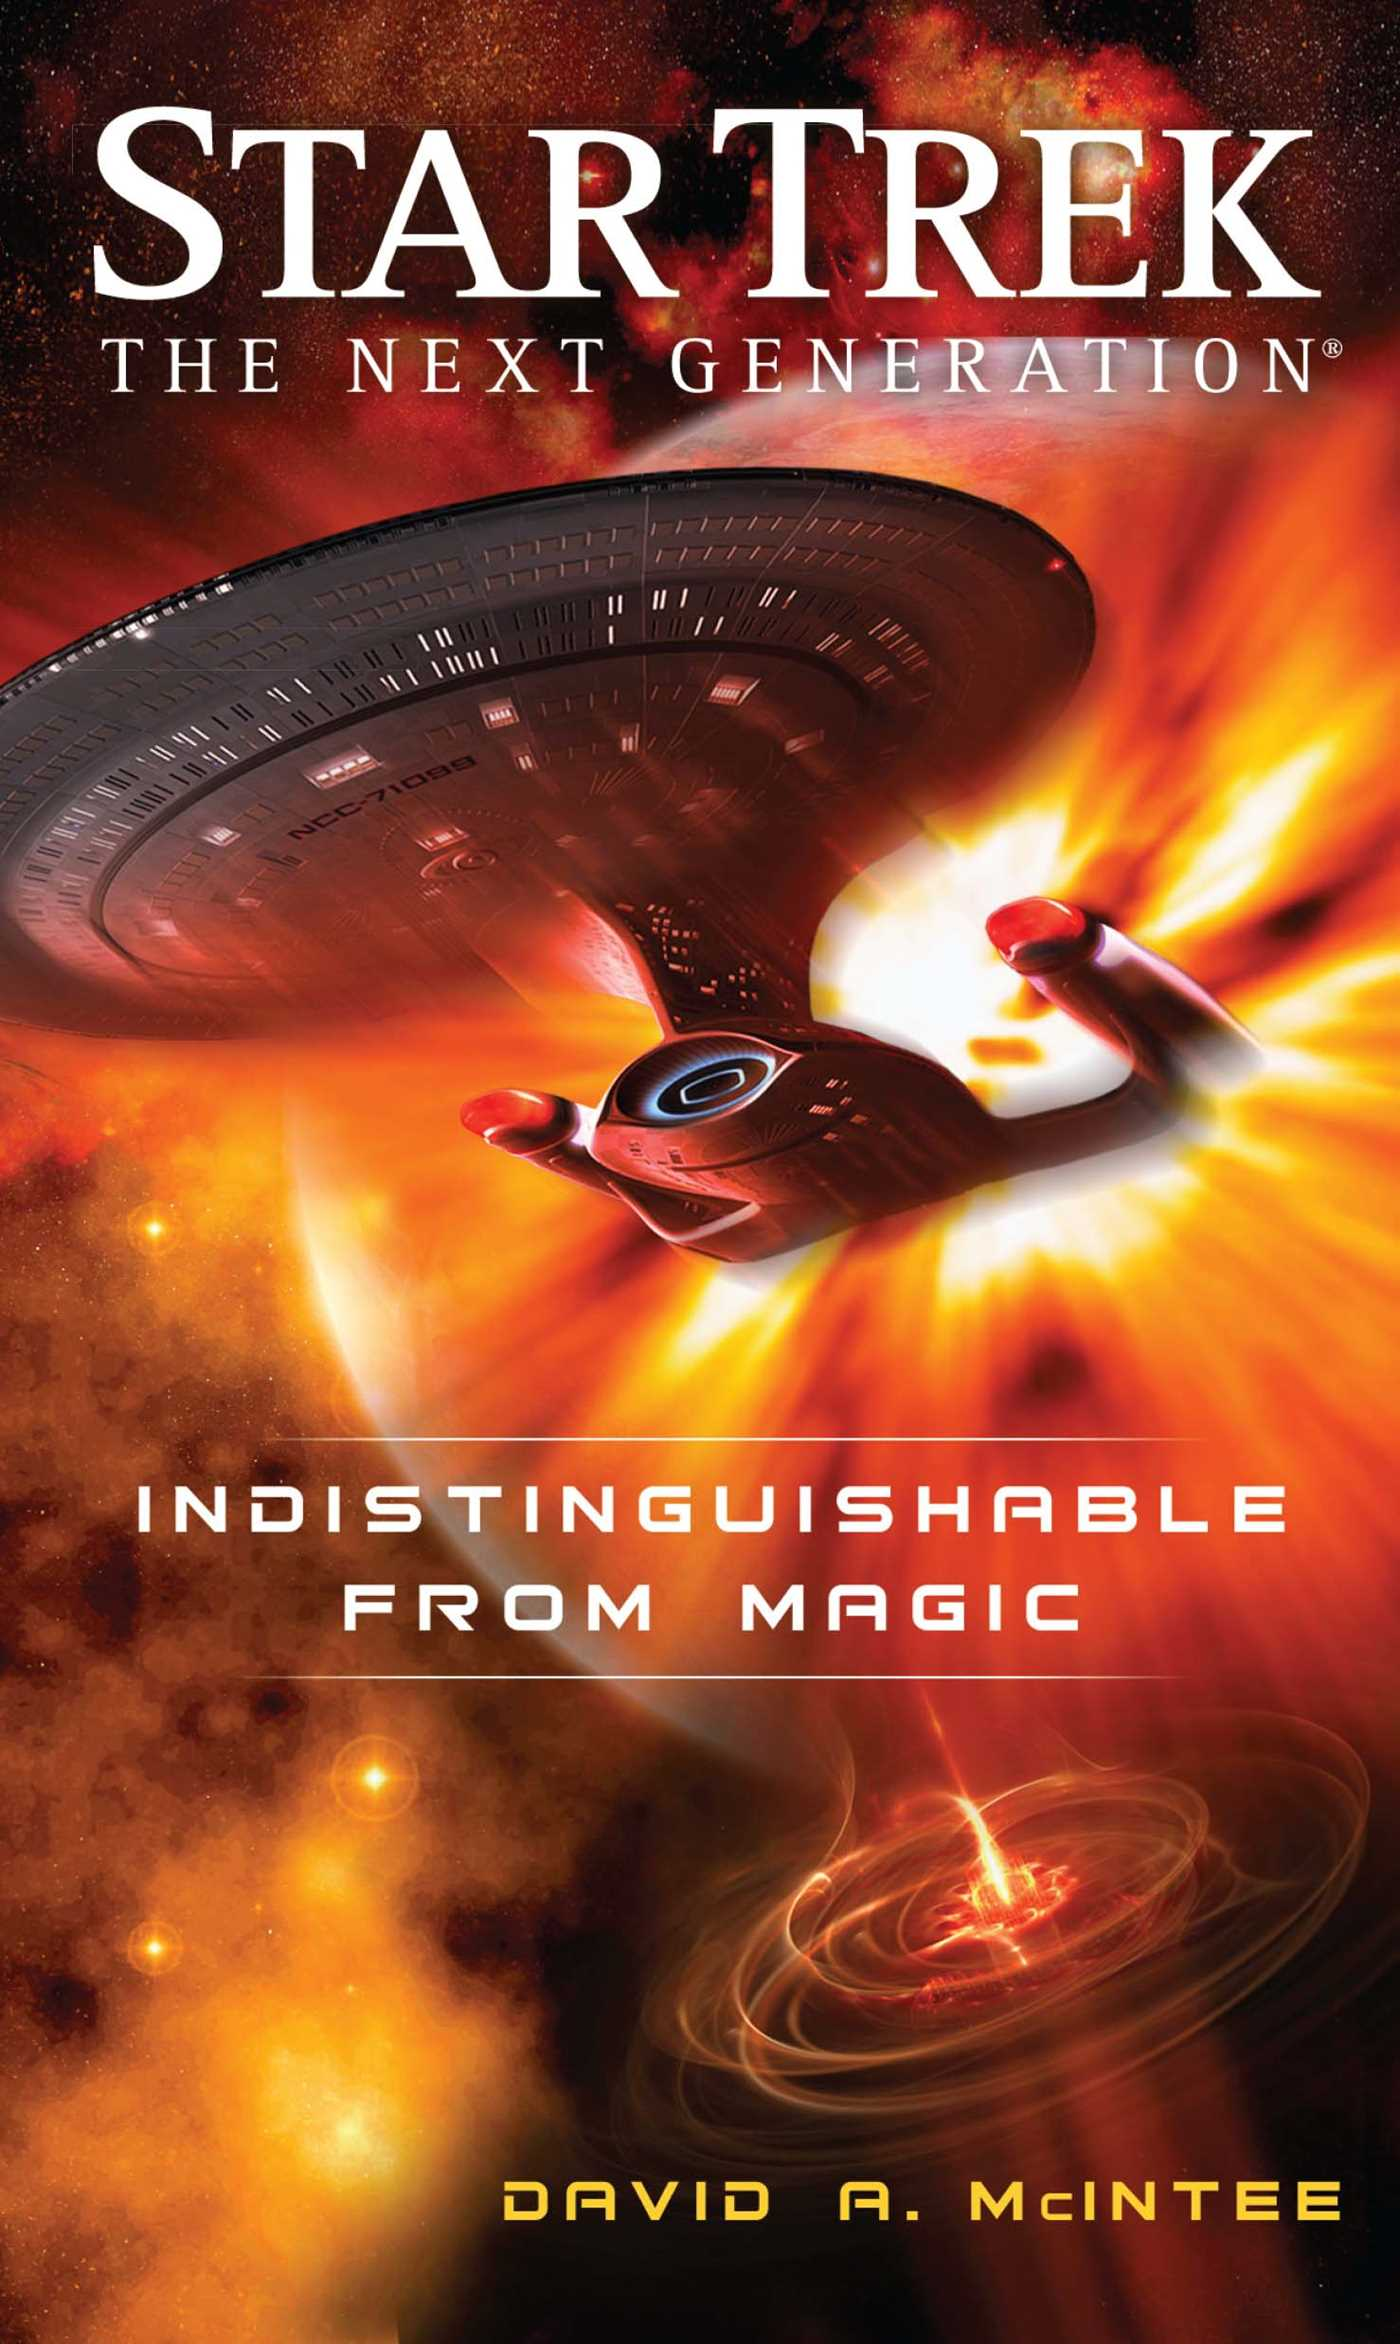 Star trek the next generation indistinguishable from magic 9781451606287 hr